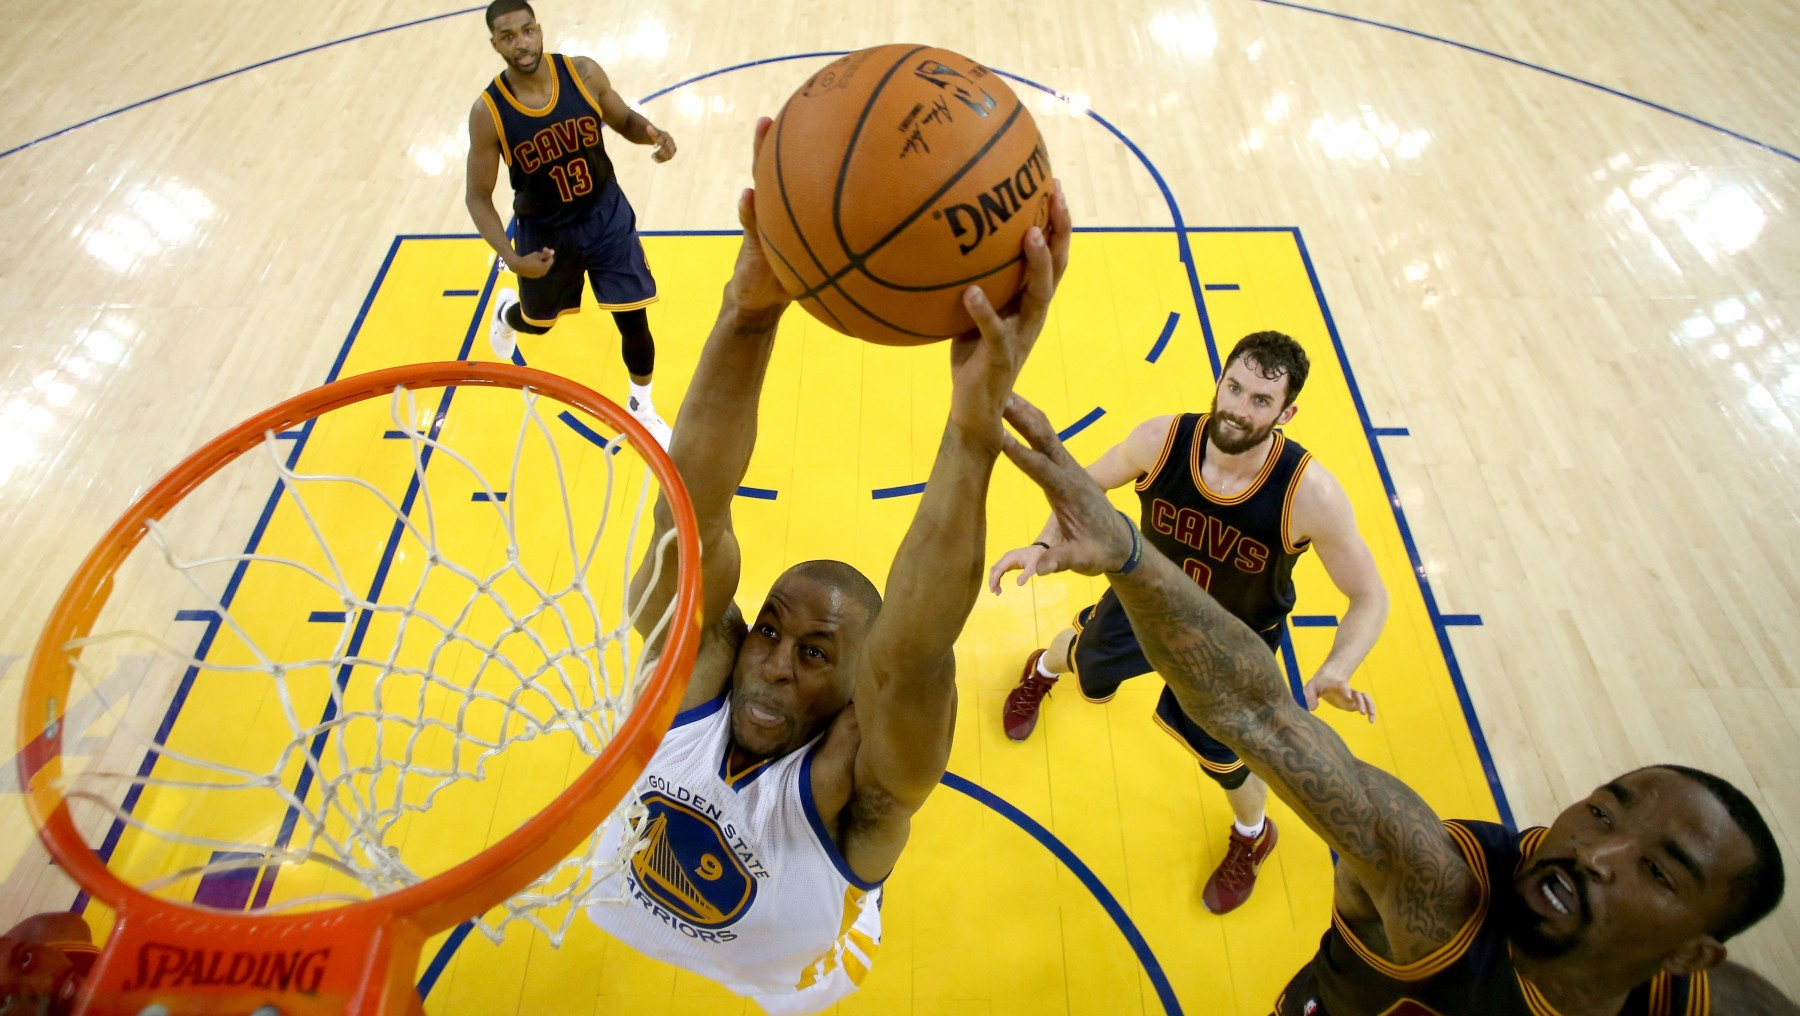 OAKLAND, CA - JUNE 02:  Andre Iguodala #9 of the Golden State Warriors goes up to dunk the ball against J.R. Smith #5 of the Cleveland Cavaliers in the first half in Game 1 of the 2016 NBA Finals at ORACLE Arena on June 2, 2016 in Oakland, California. NOTE TO USER: User expressly acknowledges and agrees that, by downloading and or using this photograph, User is consenting to the terms and conditions of the Getty Images License Agreement.  (Photo by Ezra Shaw/Getty Images)